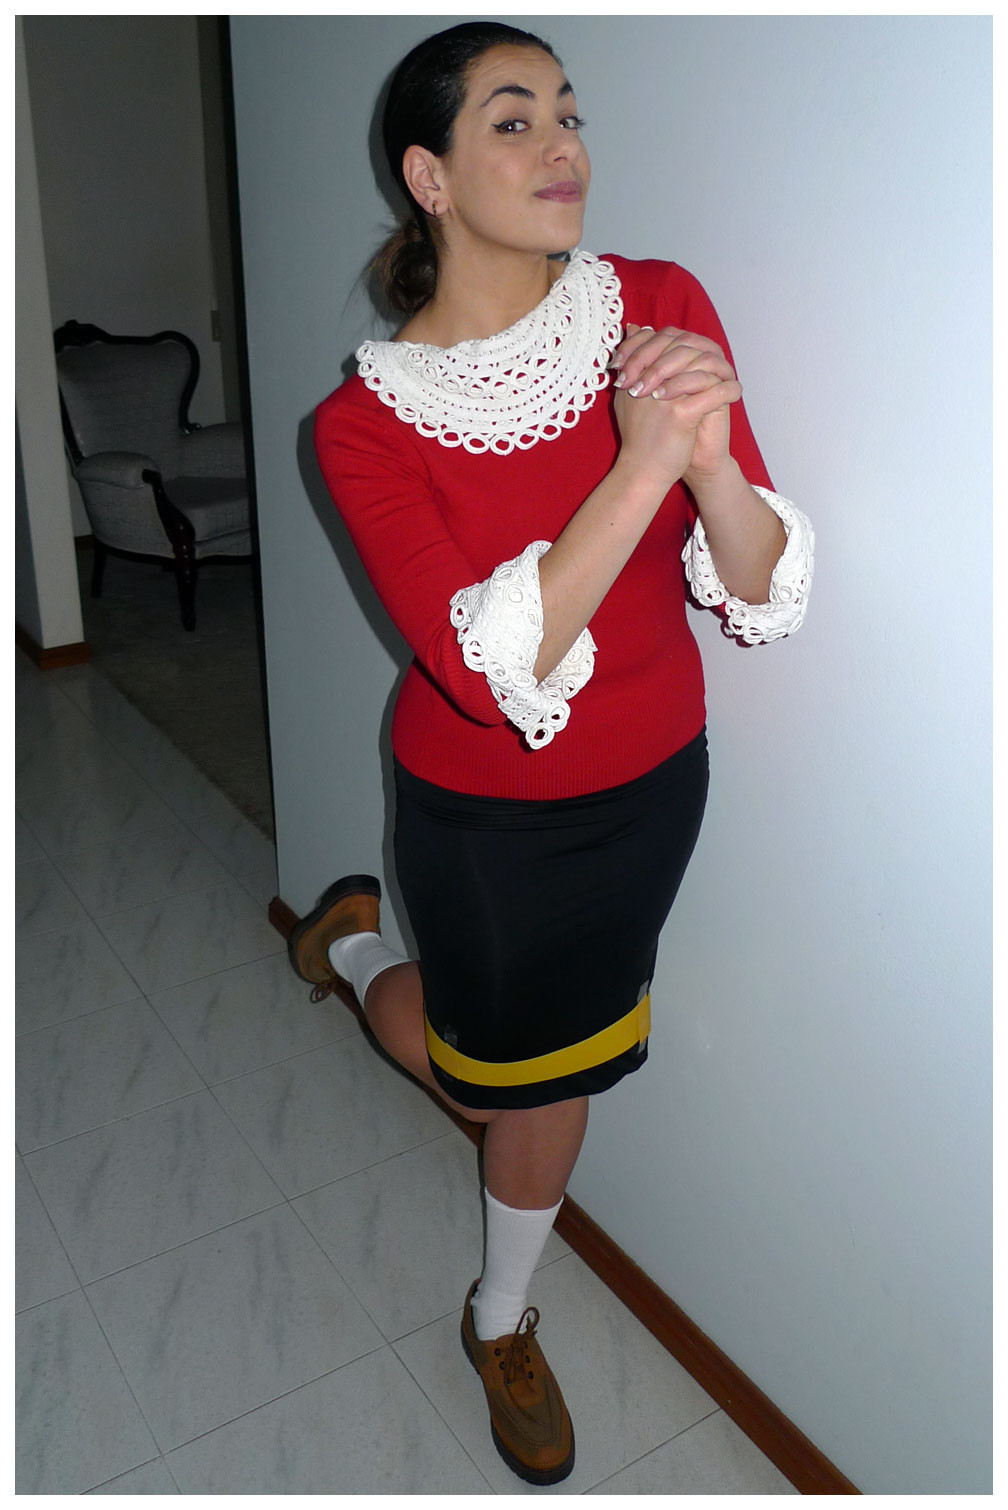 Olive Oyl Costume DIY  Olive Oil from Popeye Costume